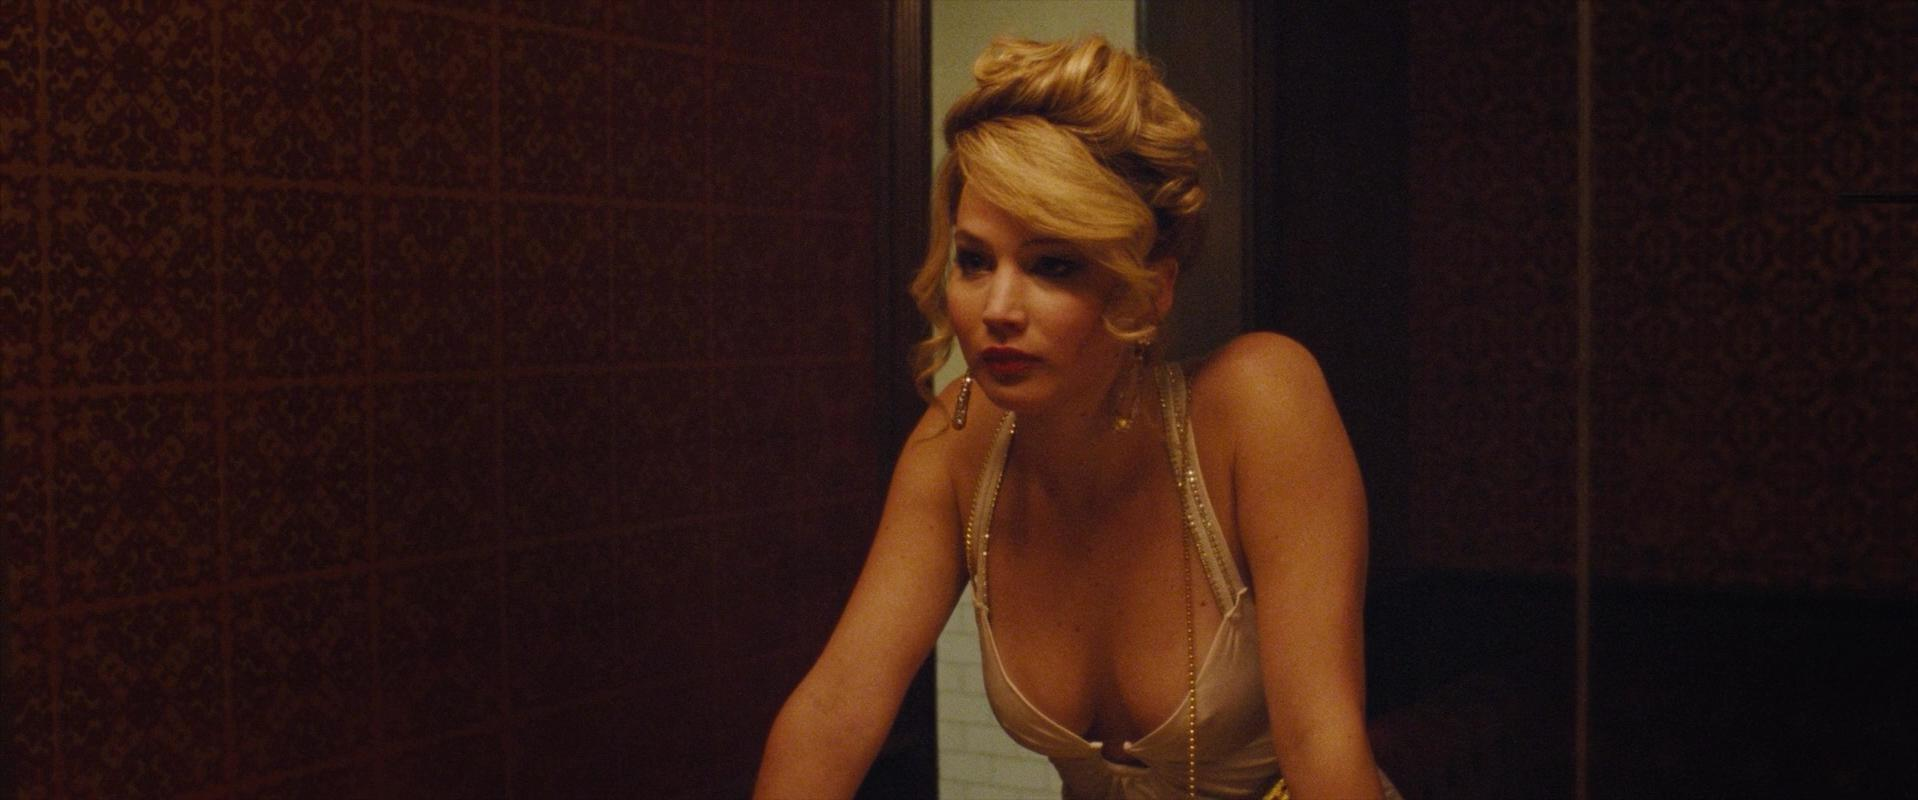 Amy Adams American Hustle Nude nude video celebs » jennifer lawrence sexy - american hustle